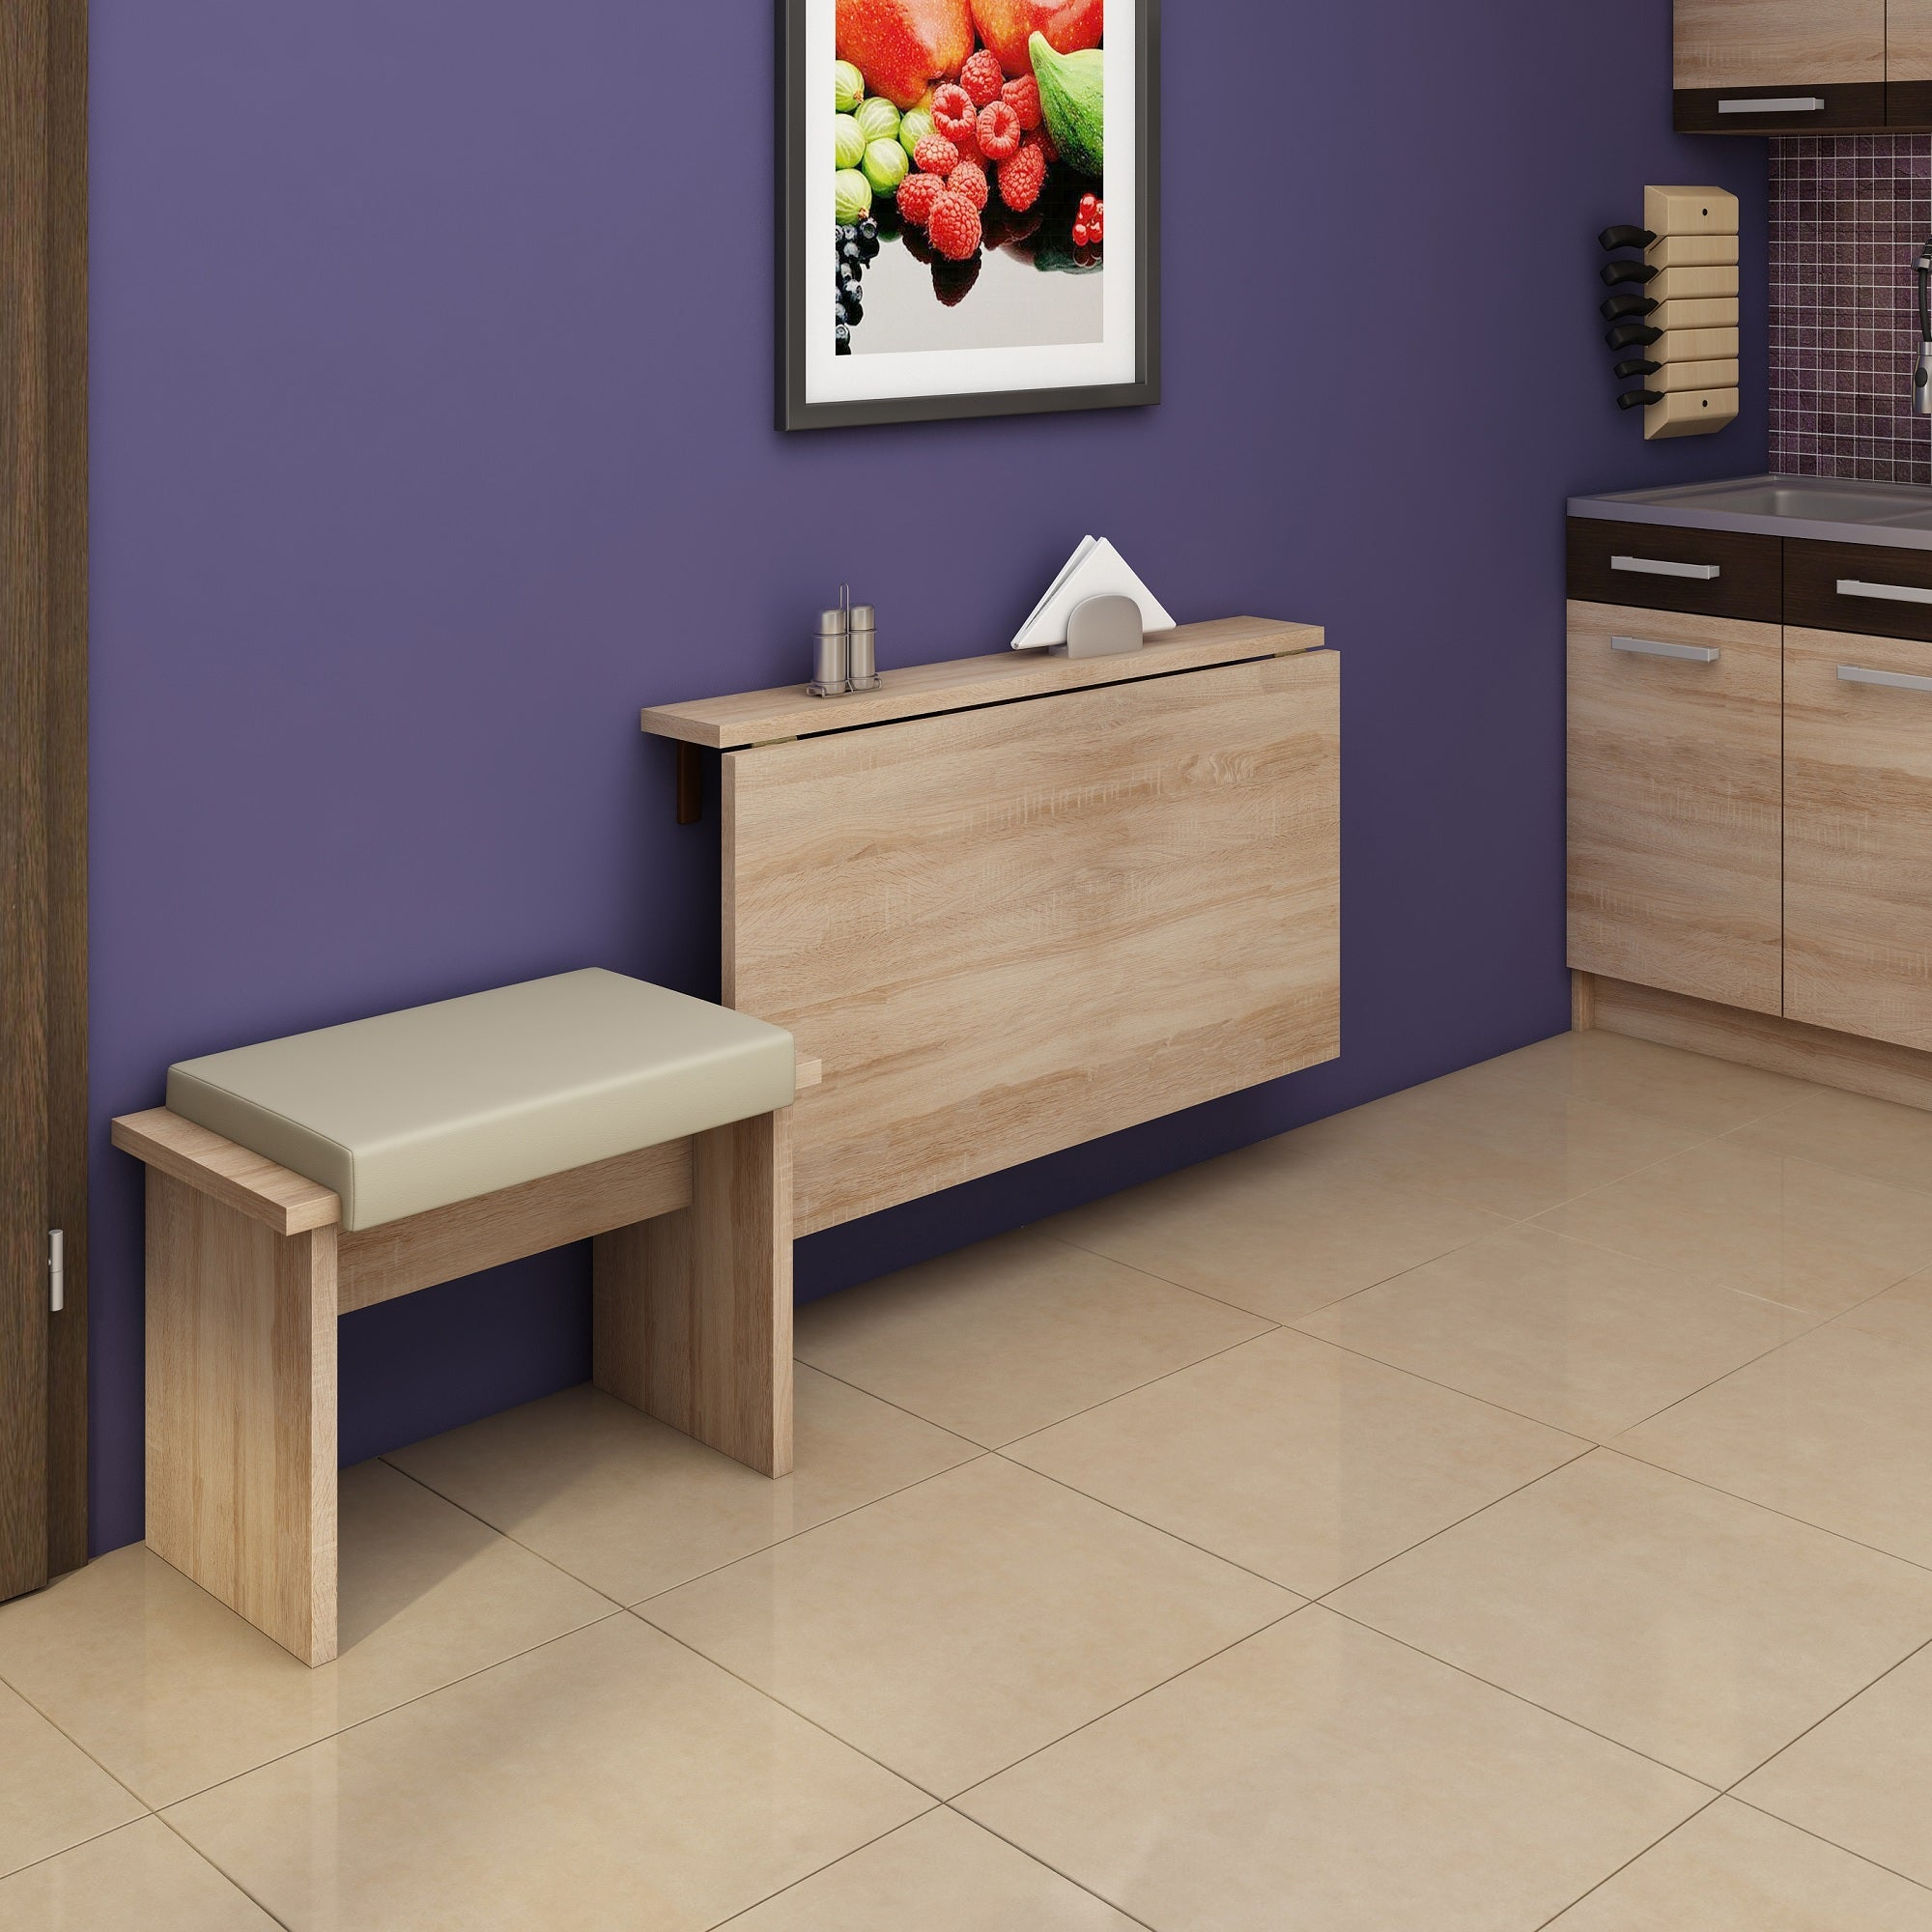 Expert D Wall-Mounted Drop Leaf Dining Table